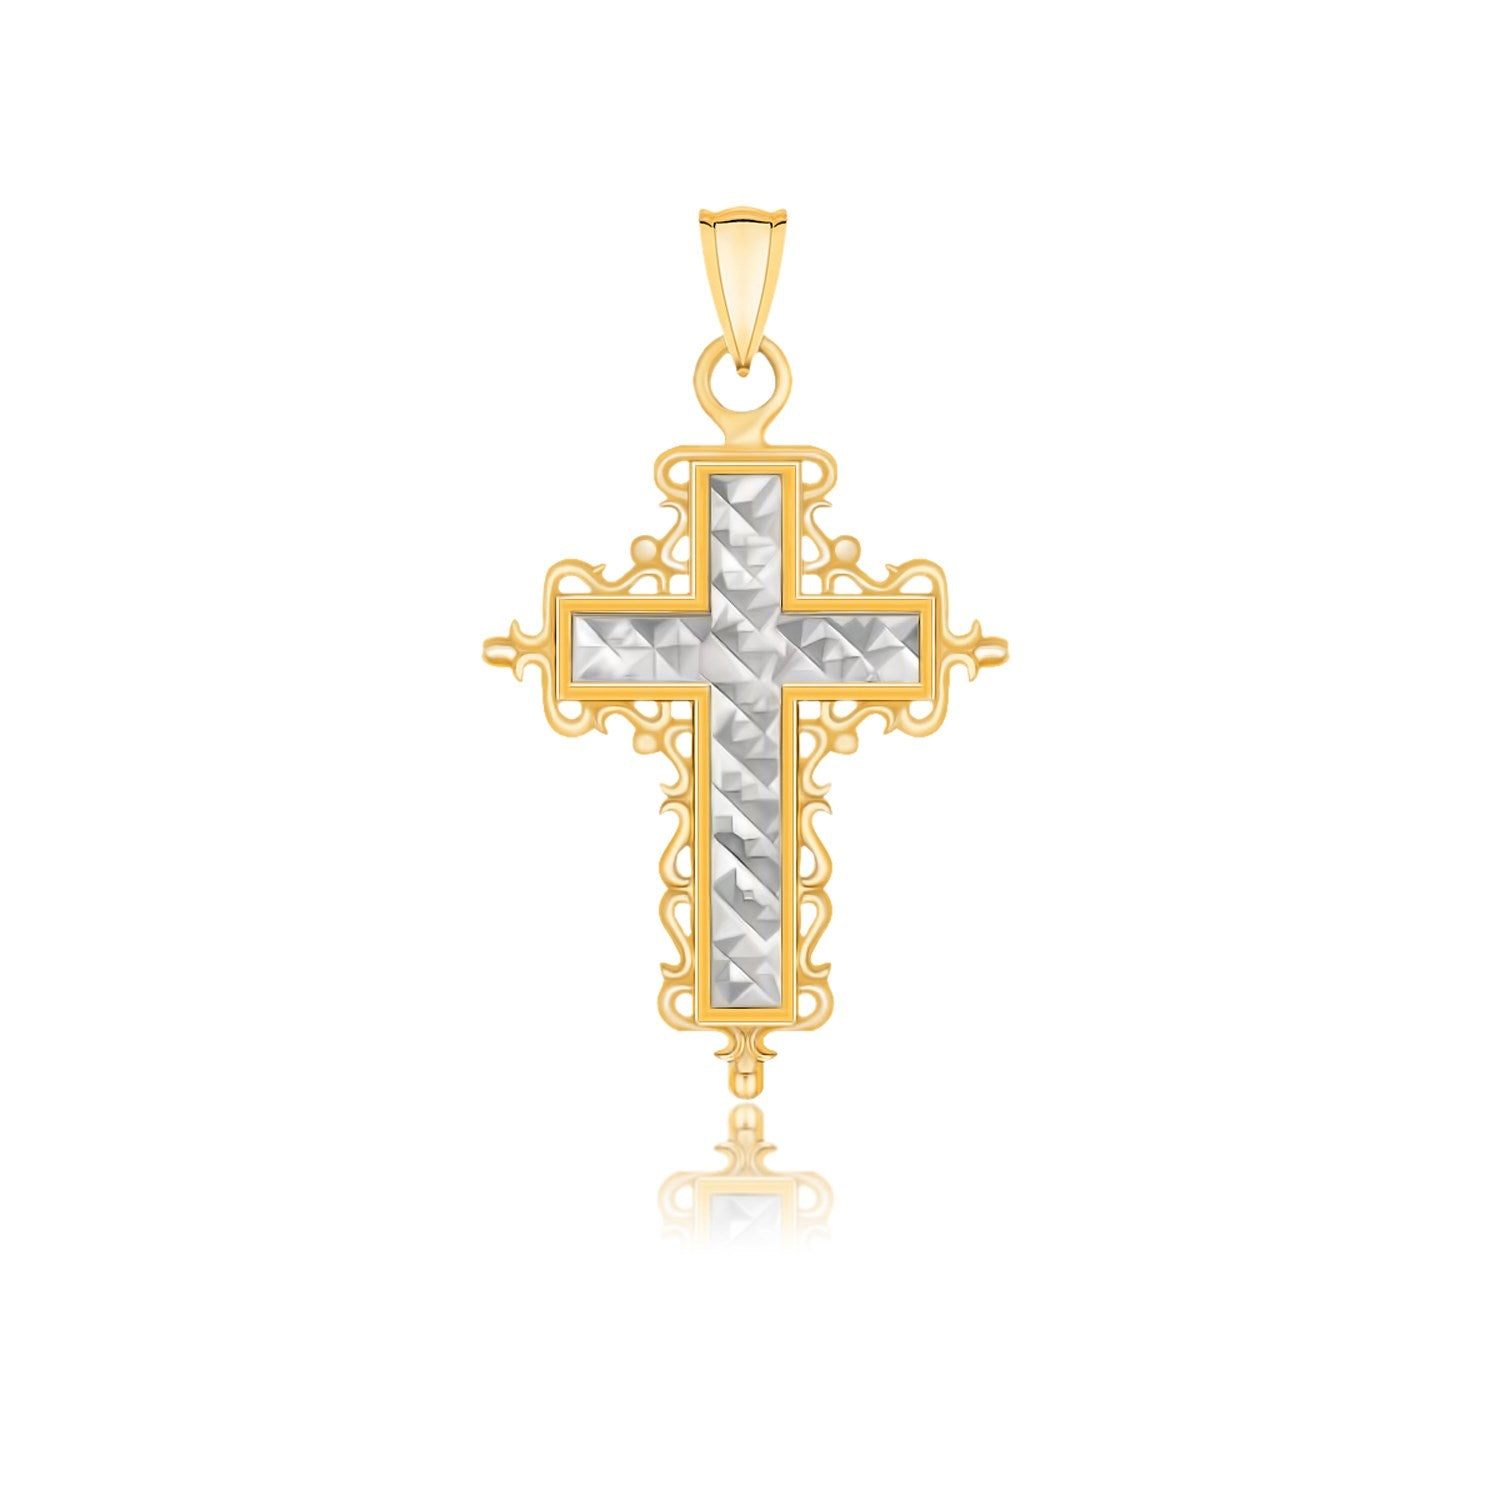 Distinctive Luxury London Style 14K Two-Tone Gold Diamond Cut and Baroque Inspired Cross Pendant